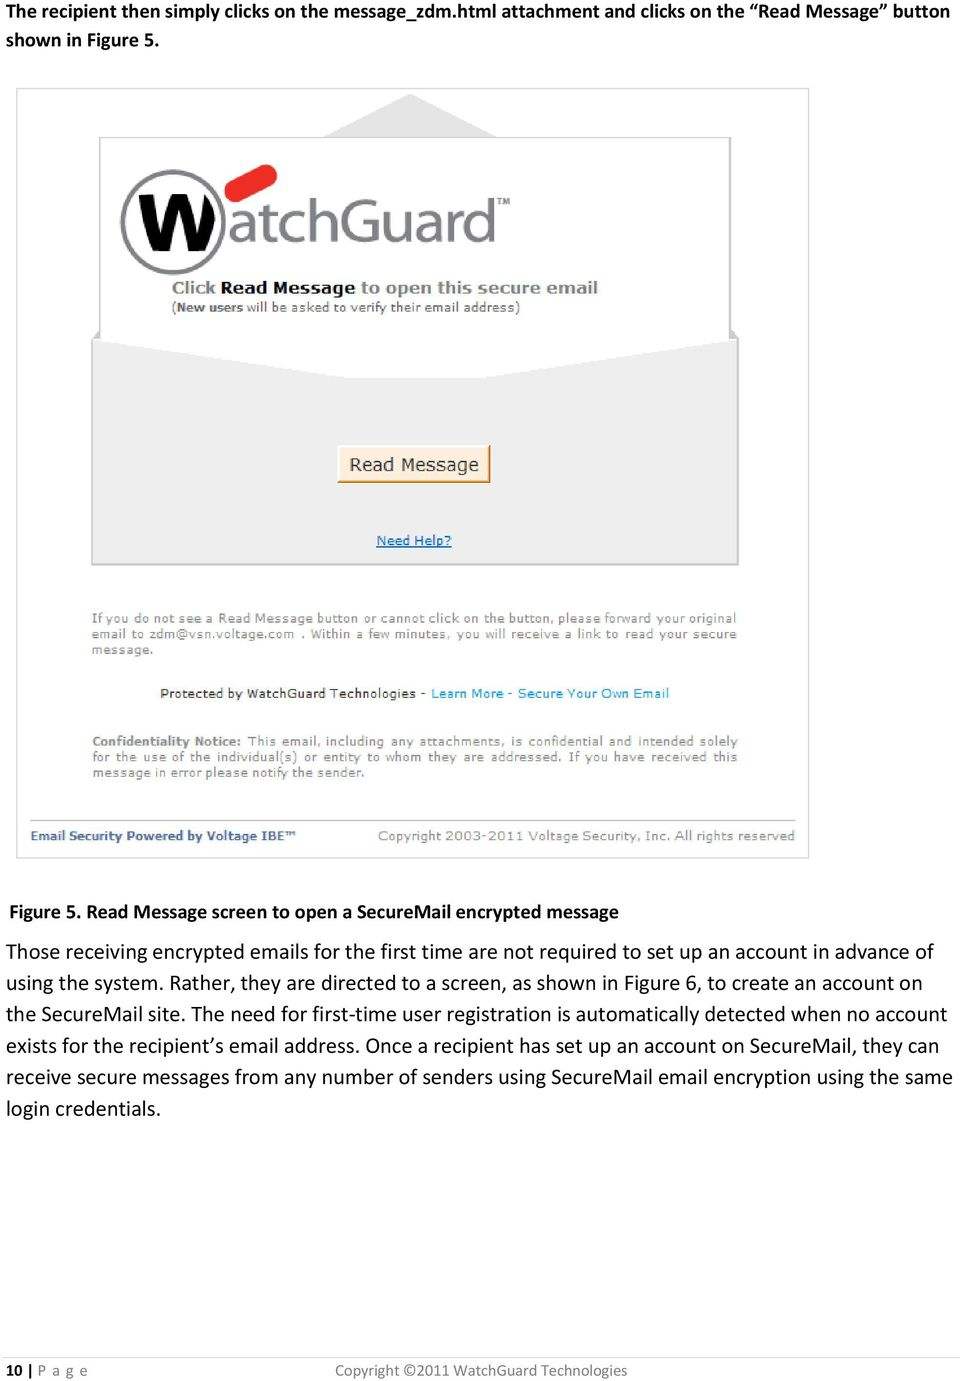 Rather, they are directed to a screen, as shown in Figure 6, to create an account on the SecureMail site.